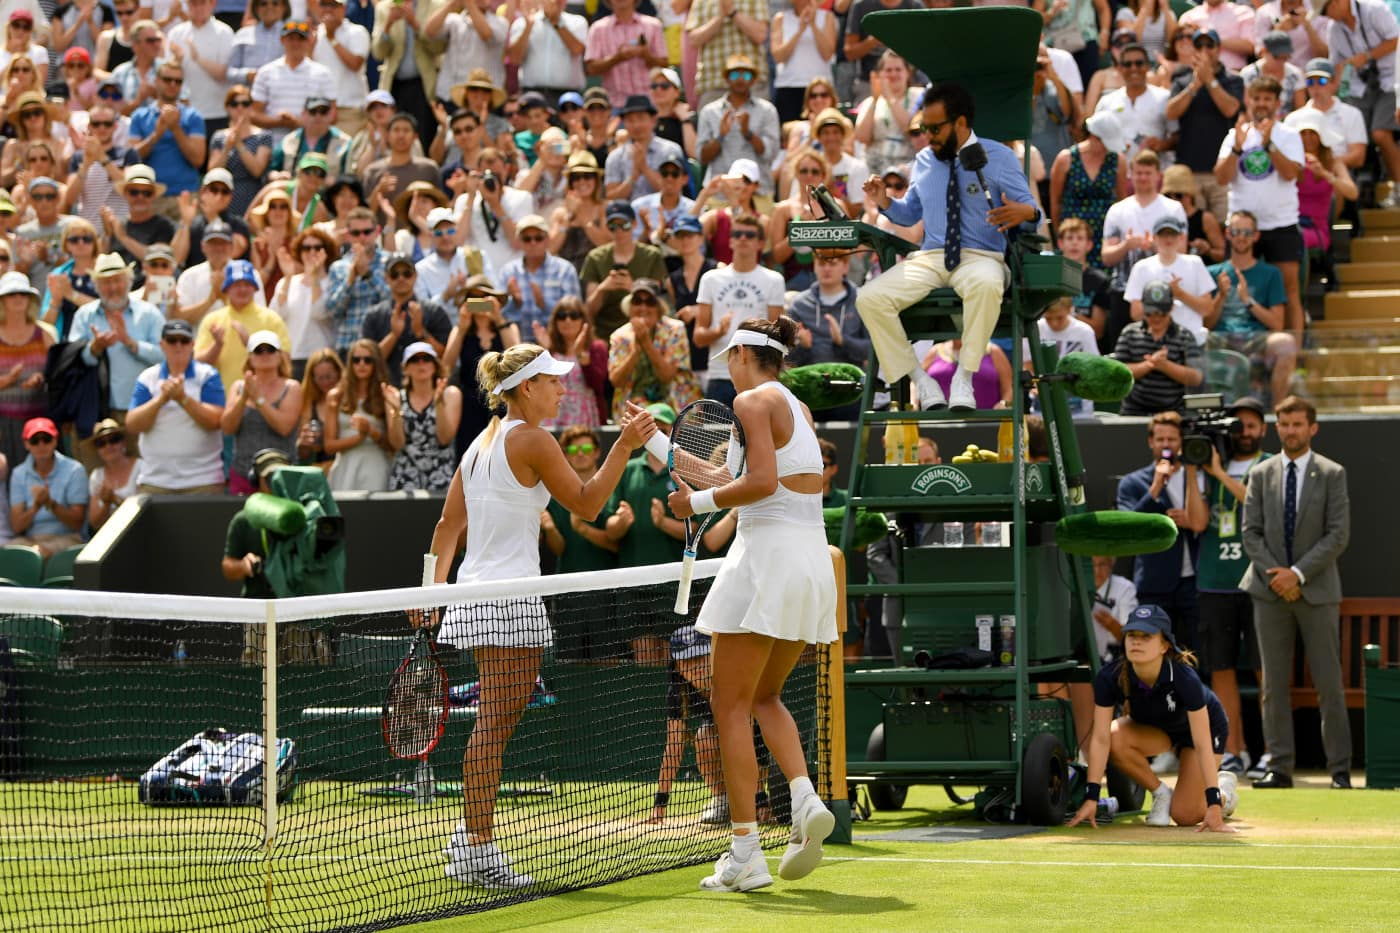 LONDON, ENGLAND - JULY 10:  Garbine Muguruza of Spain and Angelique Kerber of Germany shake hands after the Ladies Singles fourth round match on day seven of the Wimbledon Lawn Tennis Championships at the All England Lawn Tennis and Croquet Club on July 10, 2017 in London, England.  (Photo by Shaun Botterill/Getty Images)